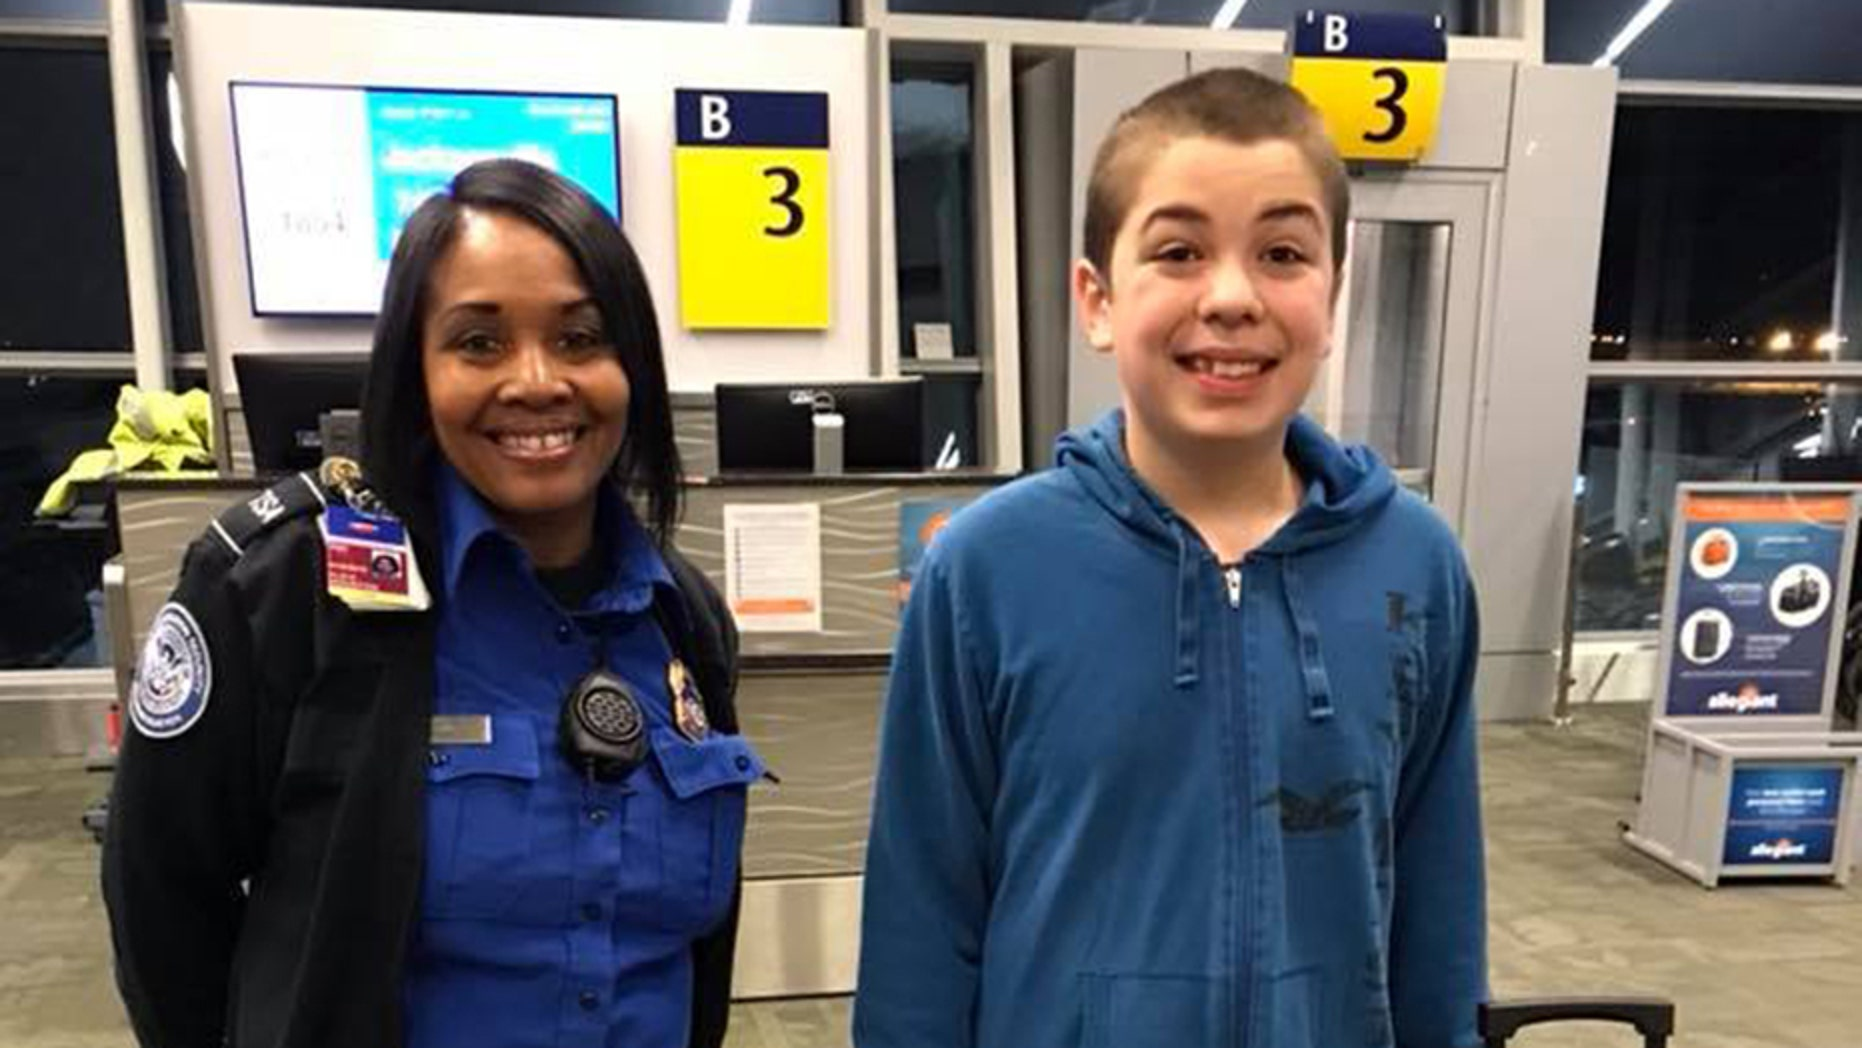 Angie Solis says a TSA employee named Alesea saved her autistic son — and Solis herself — from stressing out at the airport.